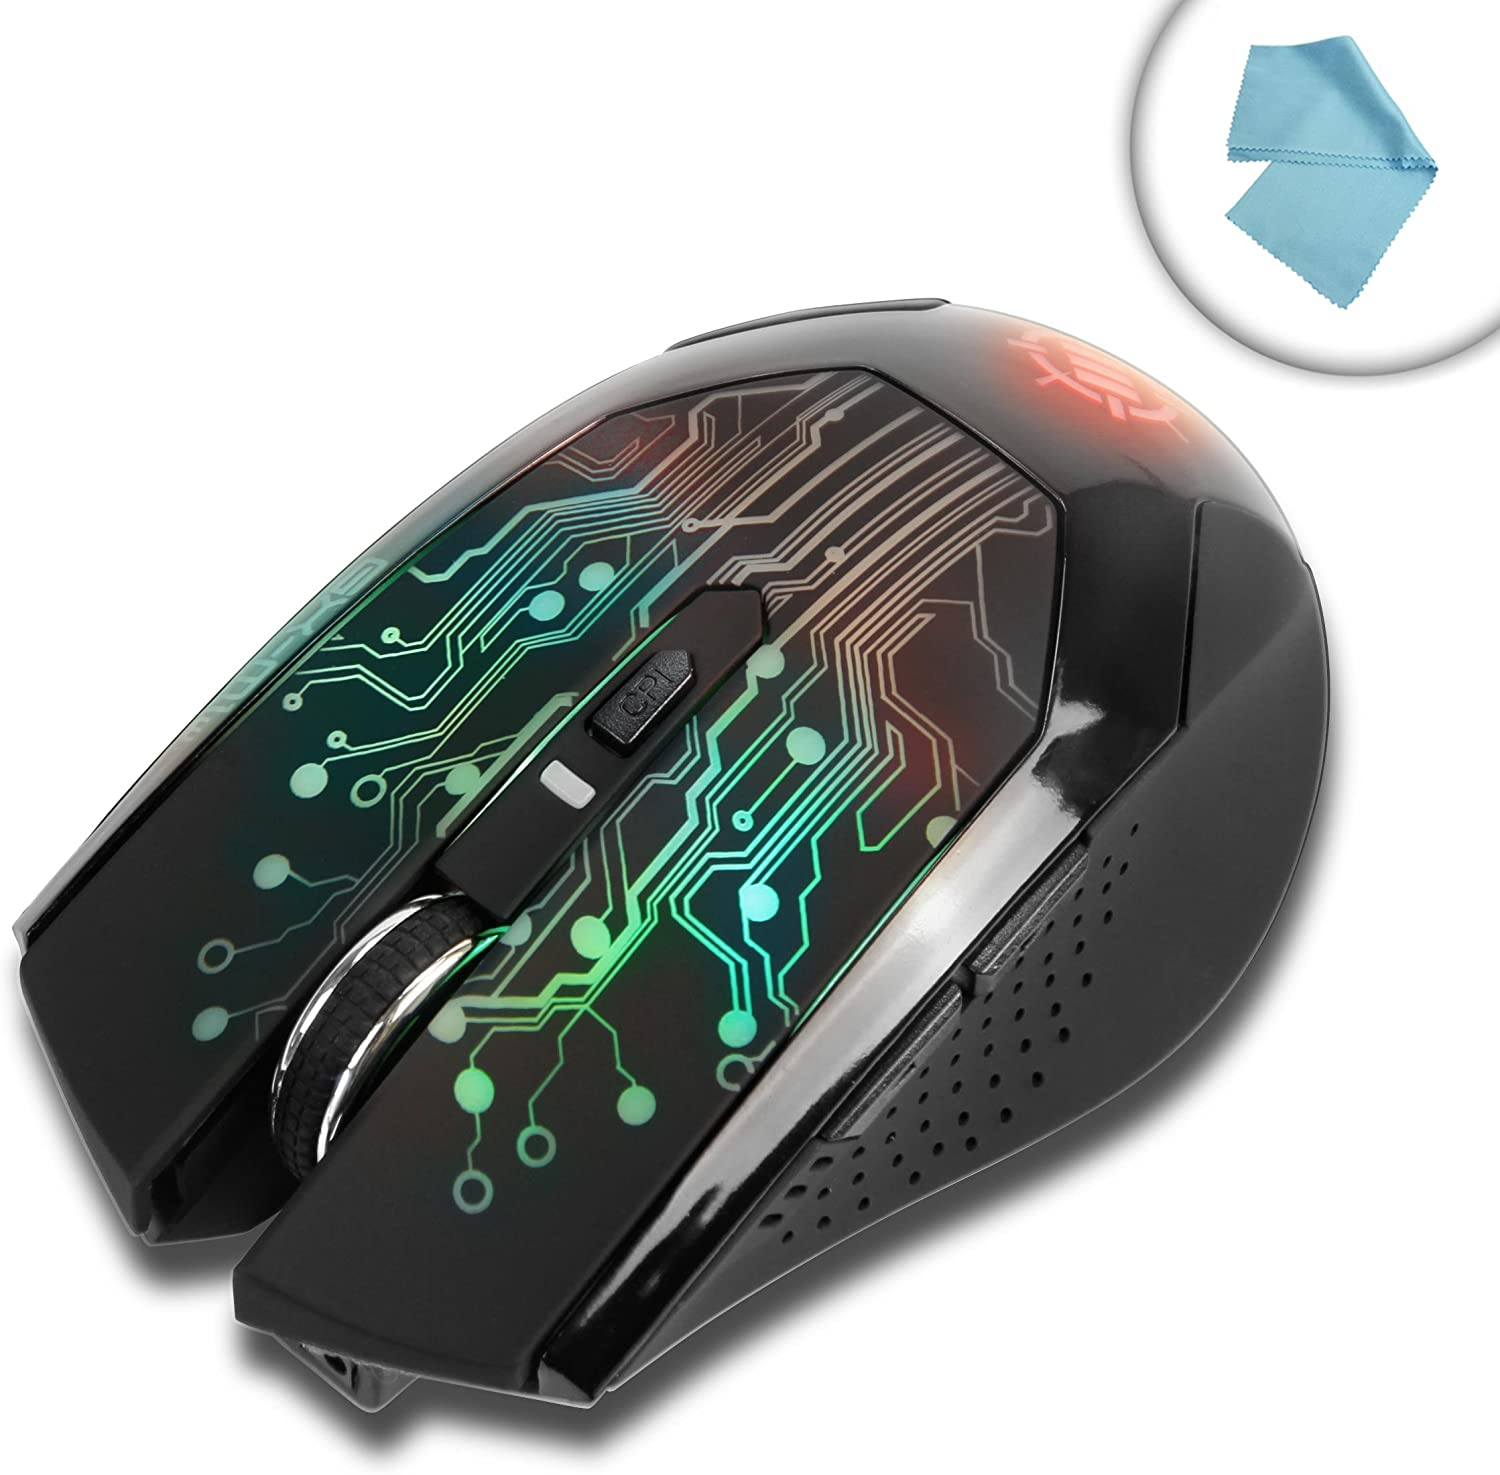 ENHANCE GX-M1w Ergonomic Wireless Gaming Mouse with Adjustable DPI Settings & 7 Color Changing LED Lights - Perfect for Laptop & Desktop ComputersBonus Cleaning Cloth